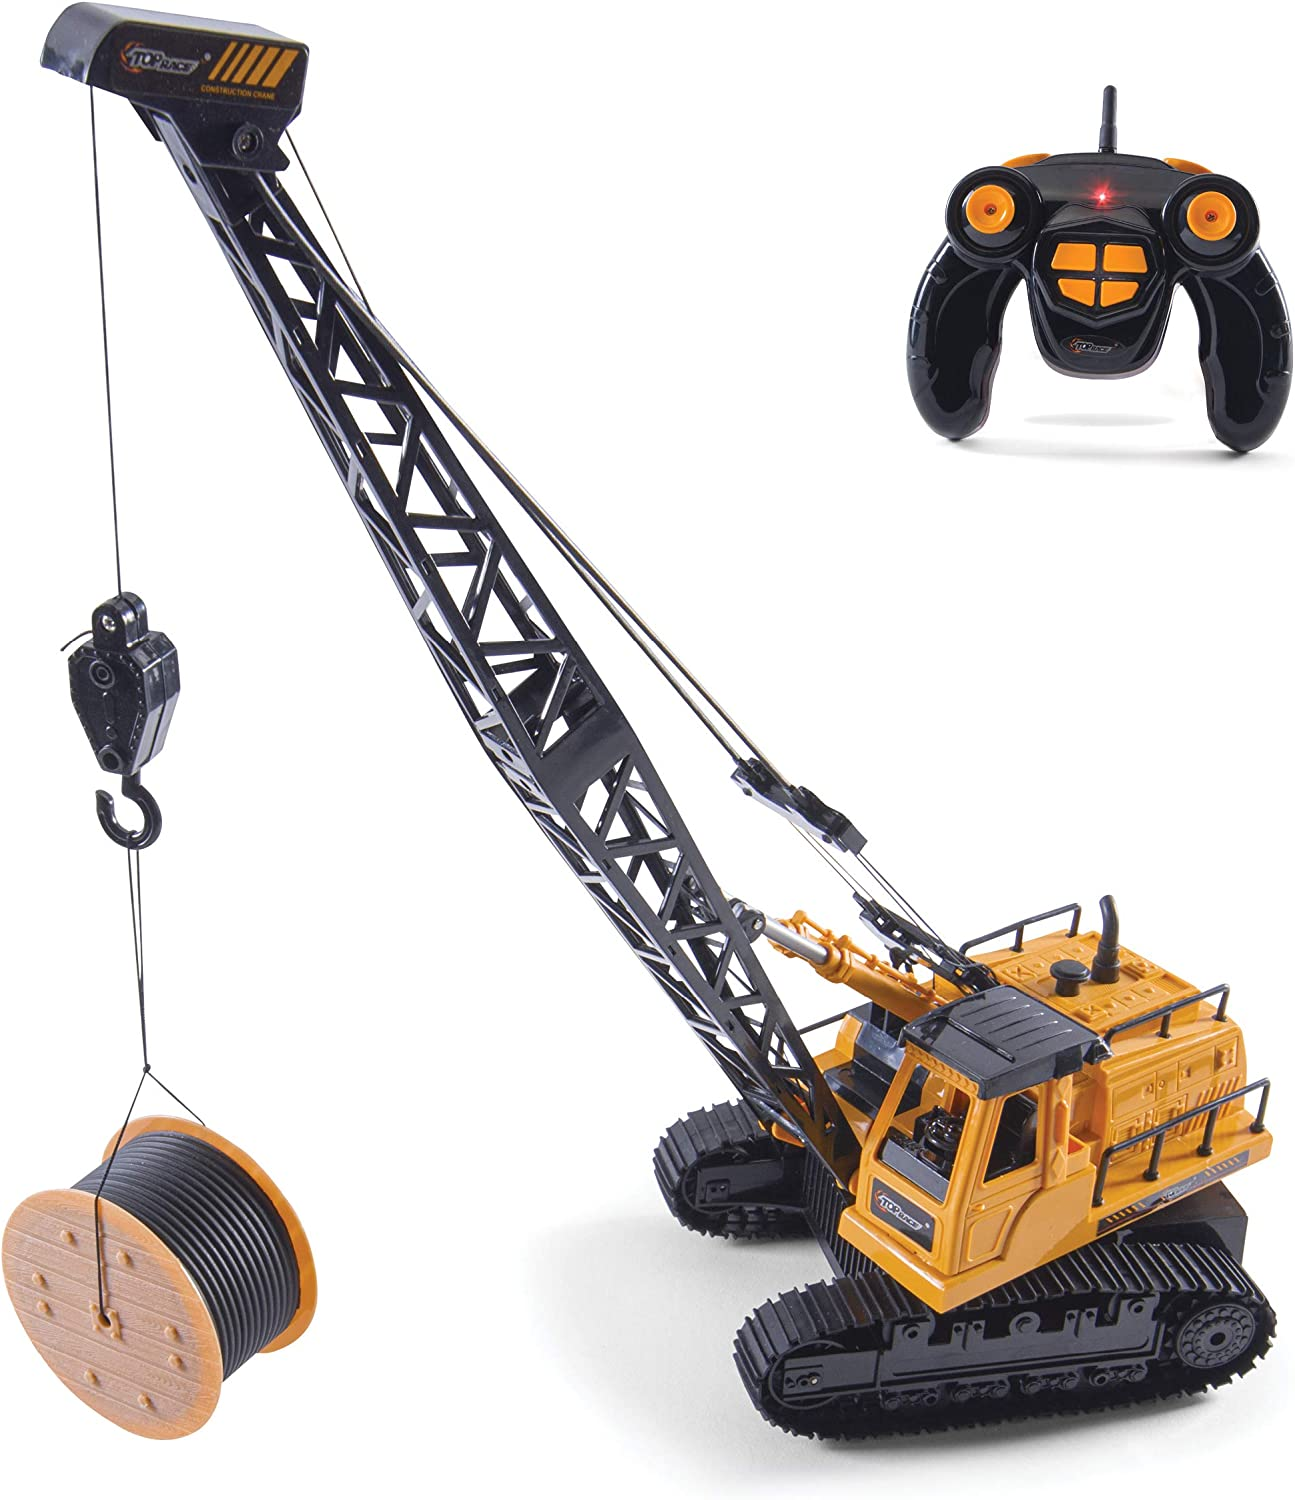 Top 9 Best Remote Control Cranes Toys (2020 Reviews & Buying Guide) 3